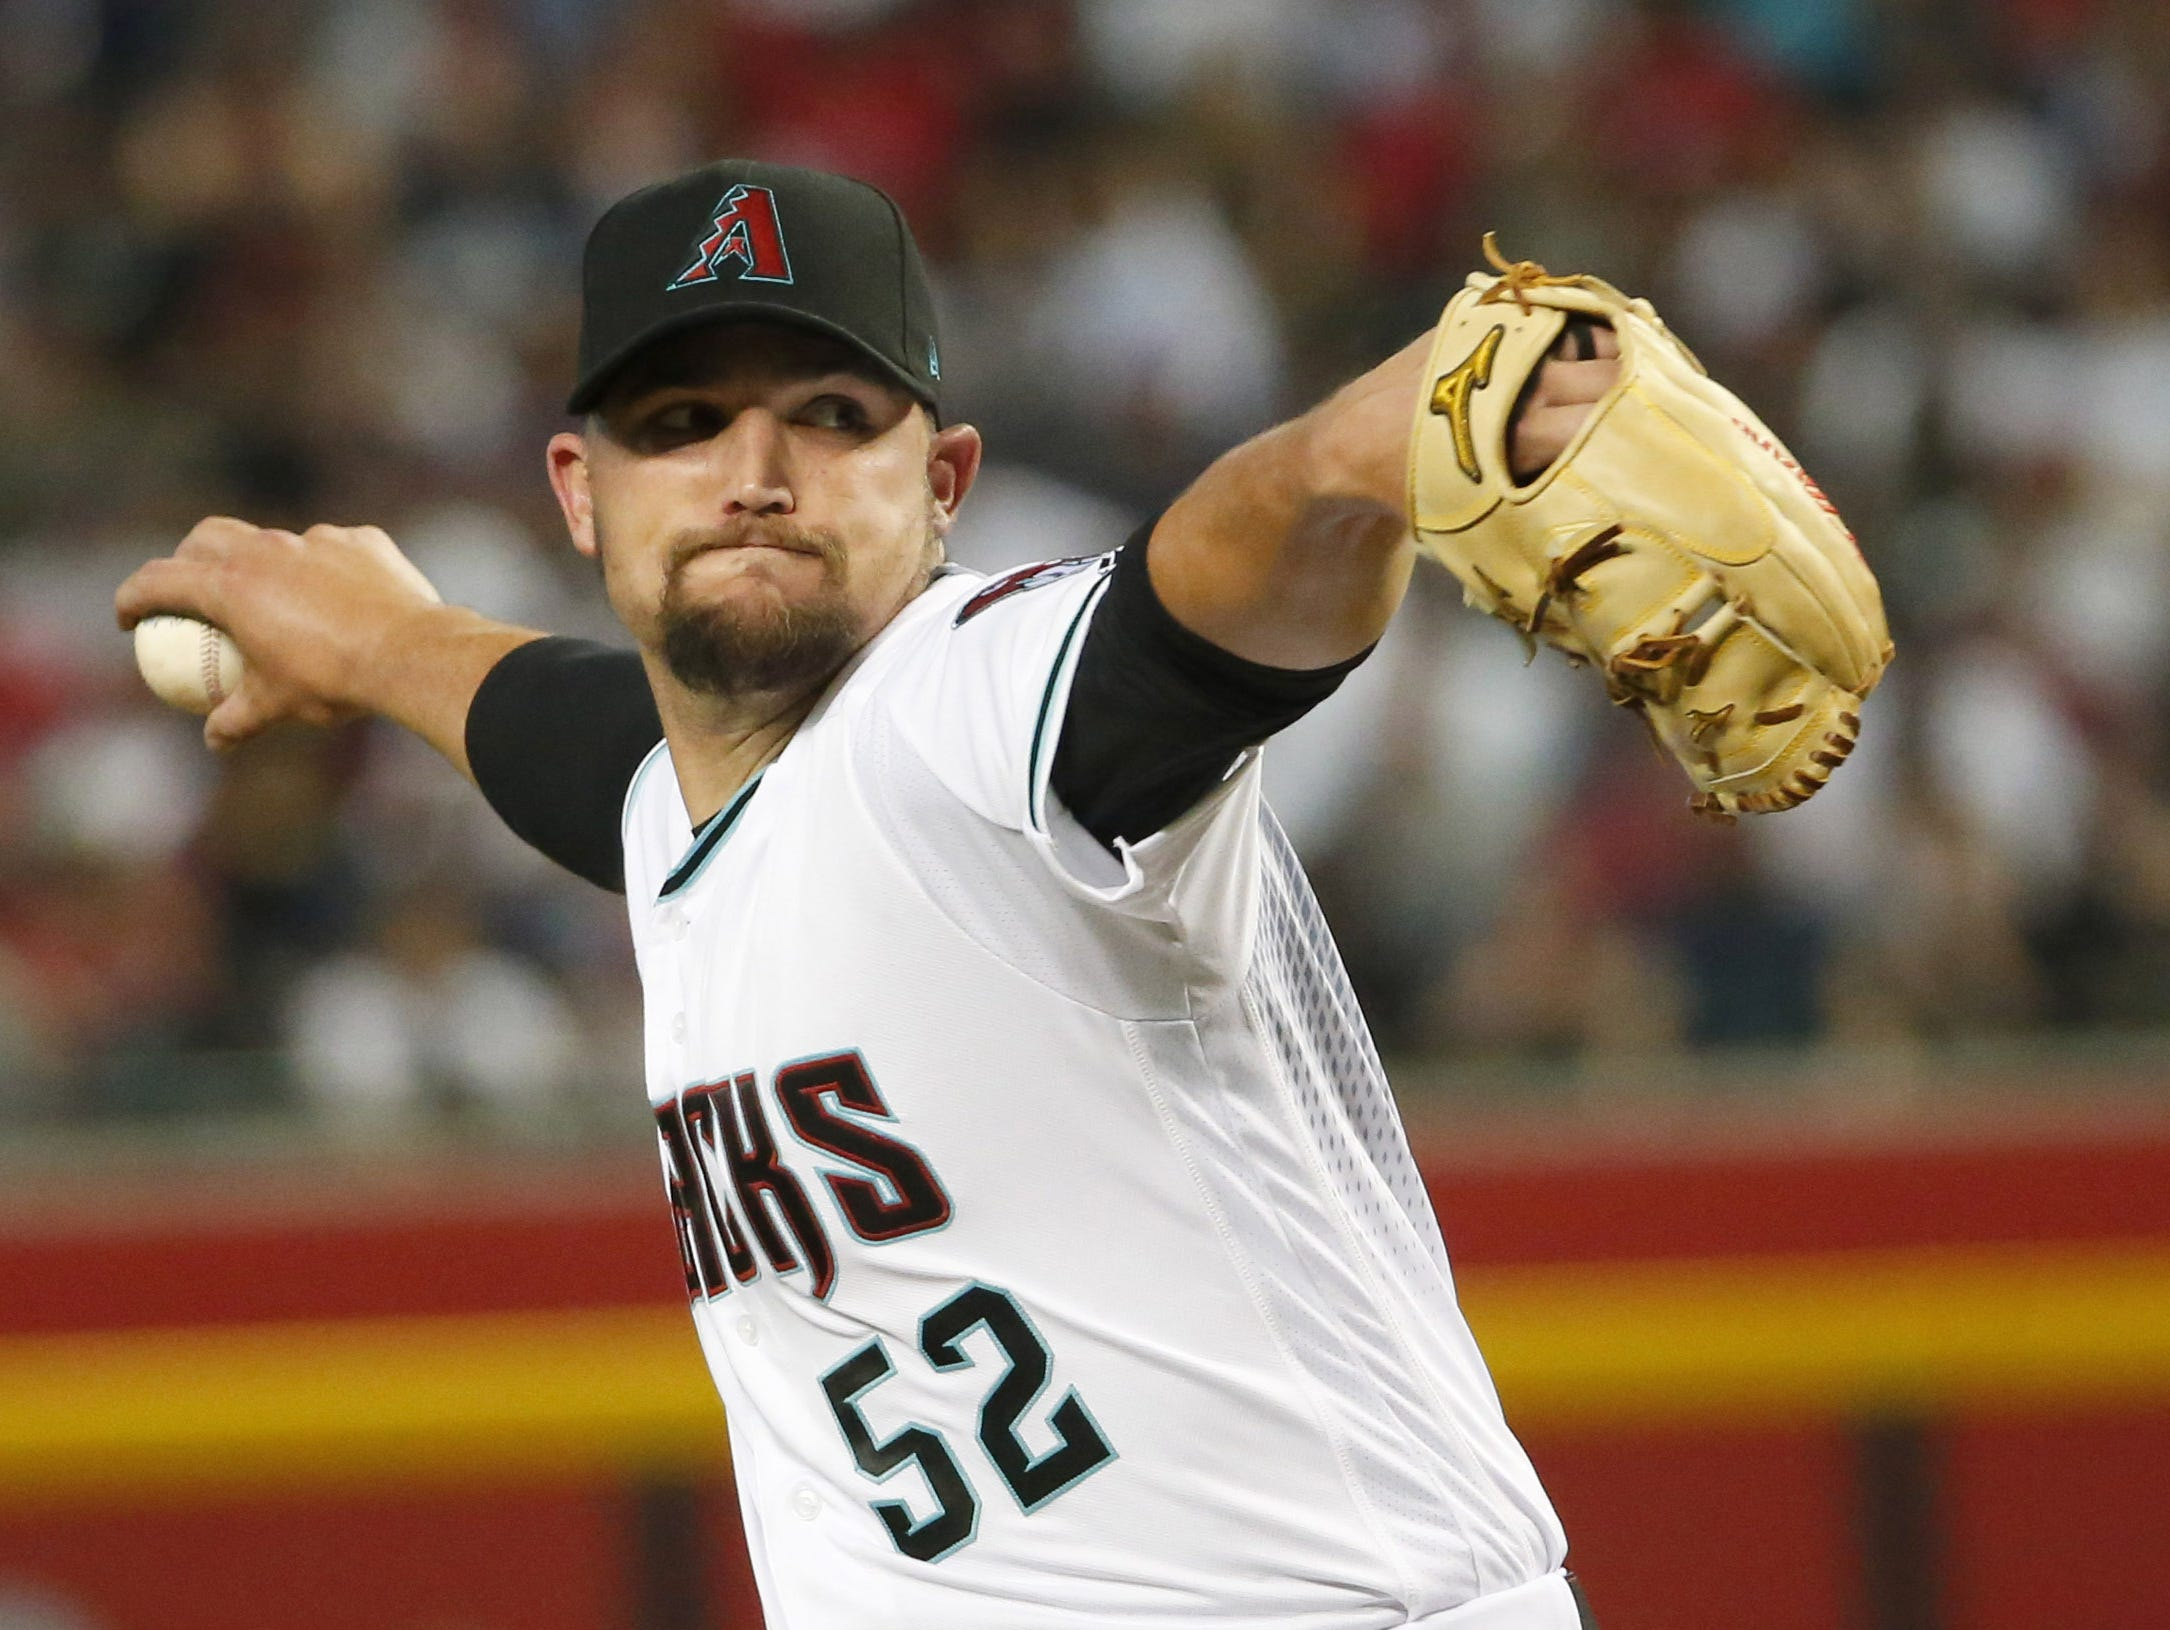 Arizona Diamondbacks starting pitcher Zack Godley (52) throws during Opening Day against the Boston Red Sox at Chase Field in Phoenix on April 5.